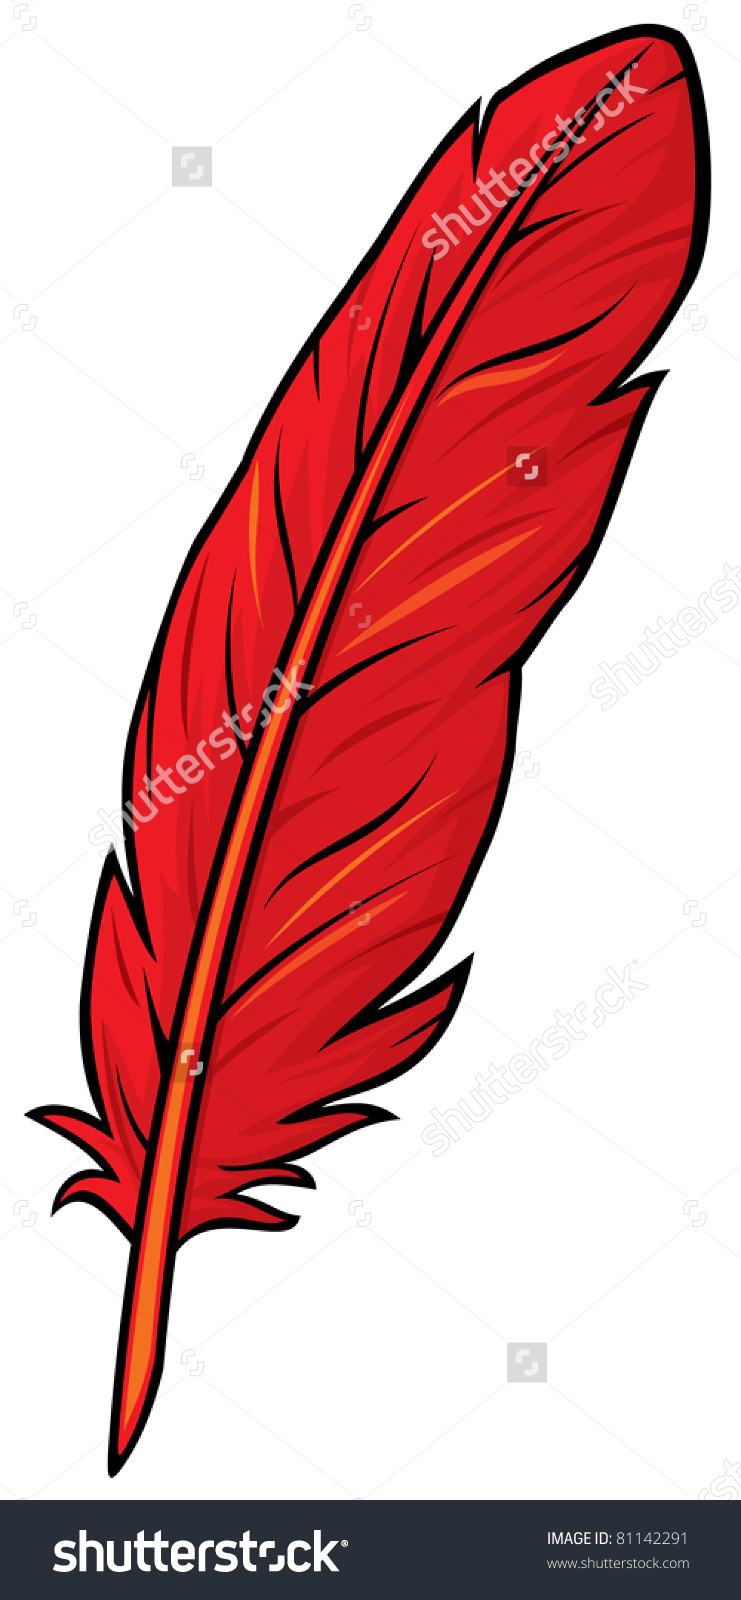 A Red Feather Stock Photos, Images, & Pictures.